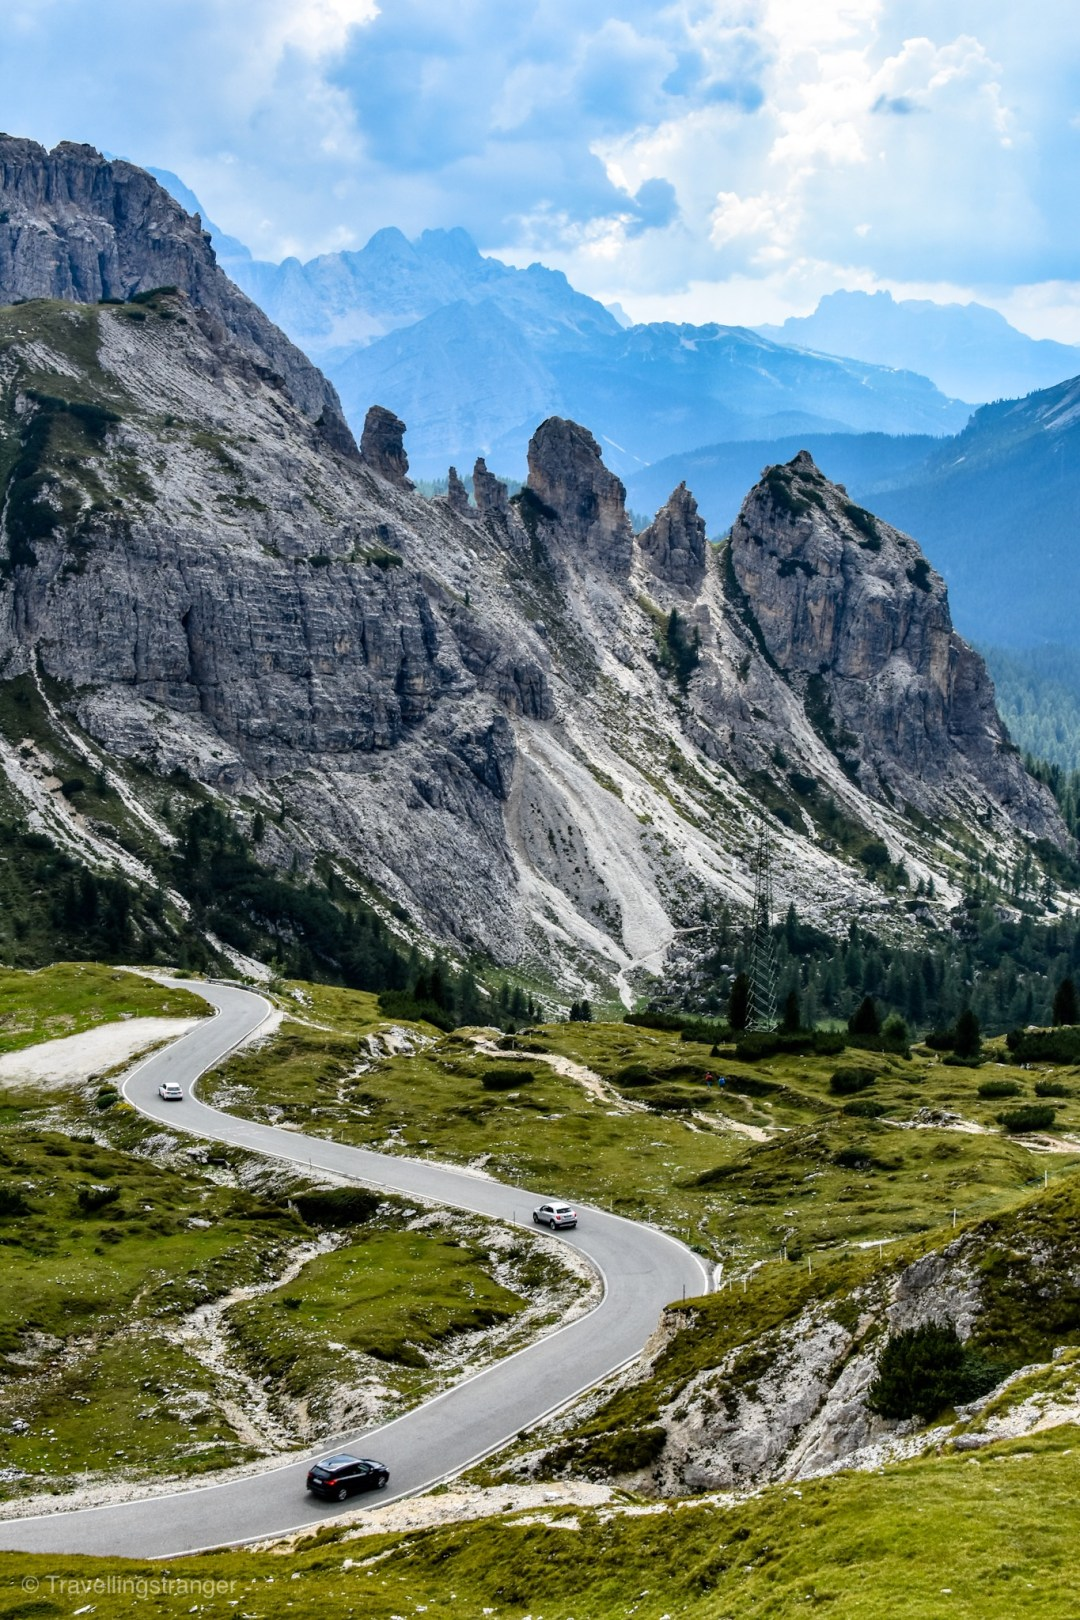 The road from Passo Gardena